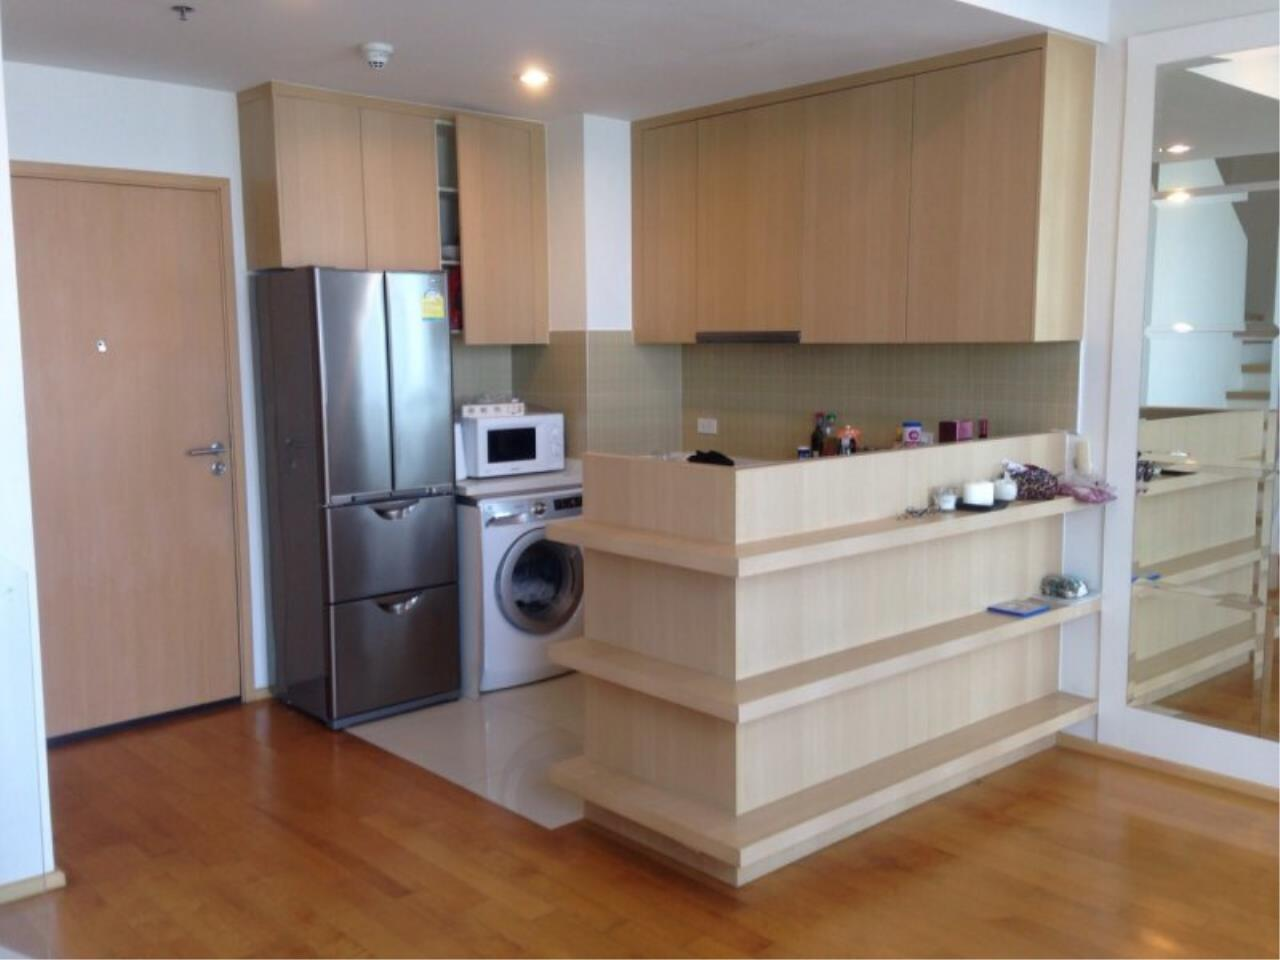 Piri Property Agency's Duplex 1 Bedroom in the Villa Ratchatewi Condo for rent on high floor 10